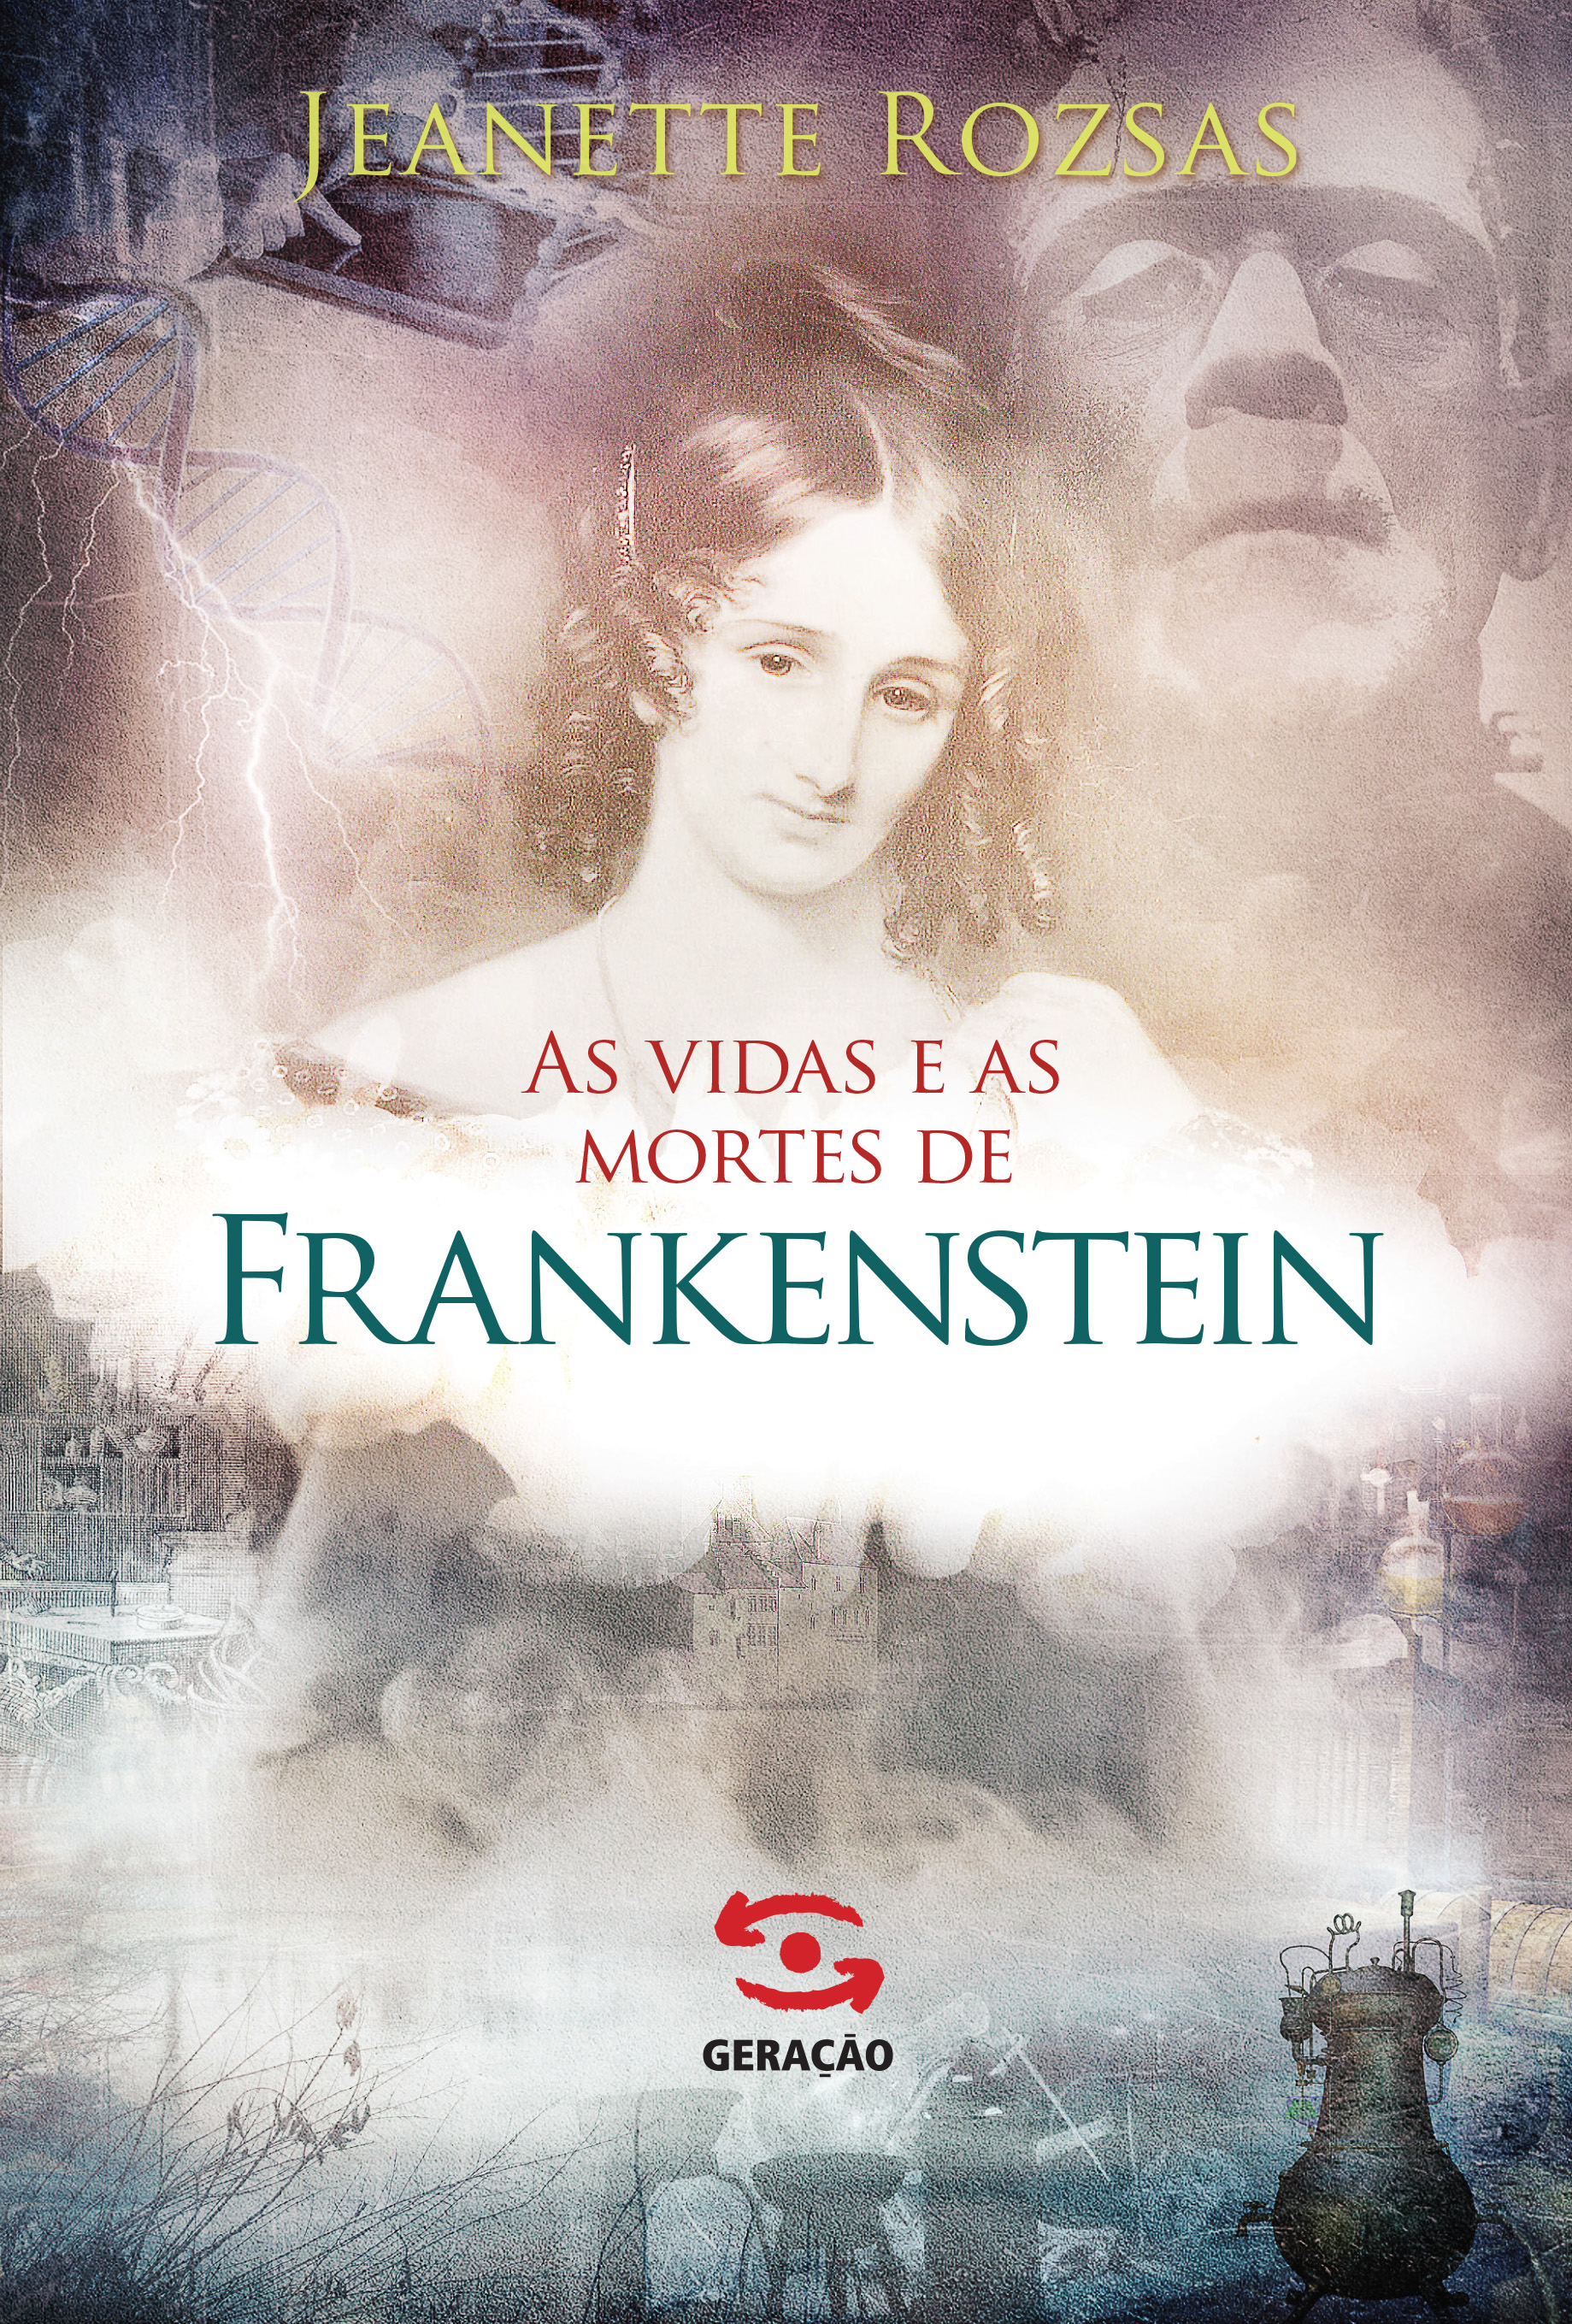 Vidas e as Mortes de Frankenstein, As, livro de Jeanette Rozsas